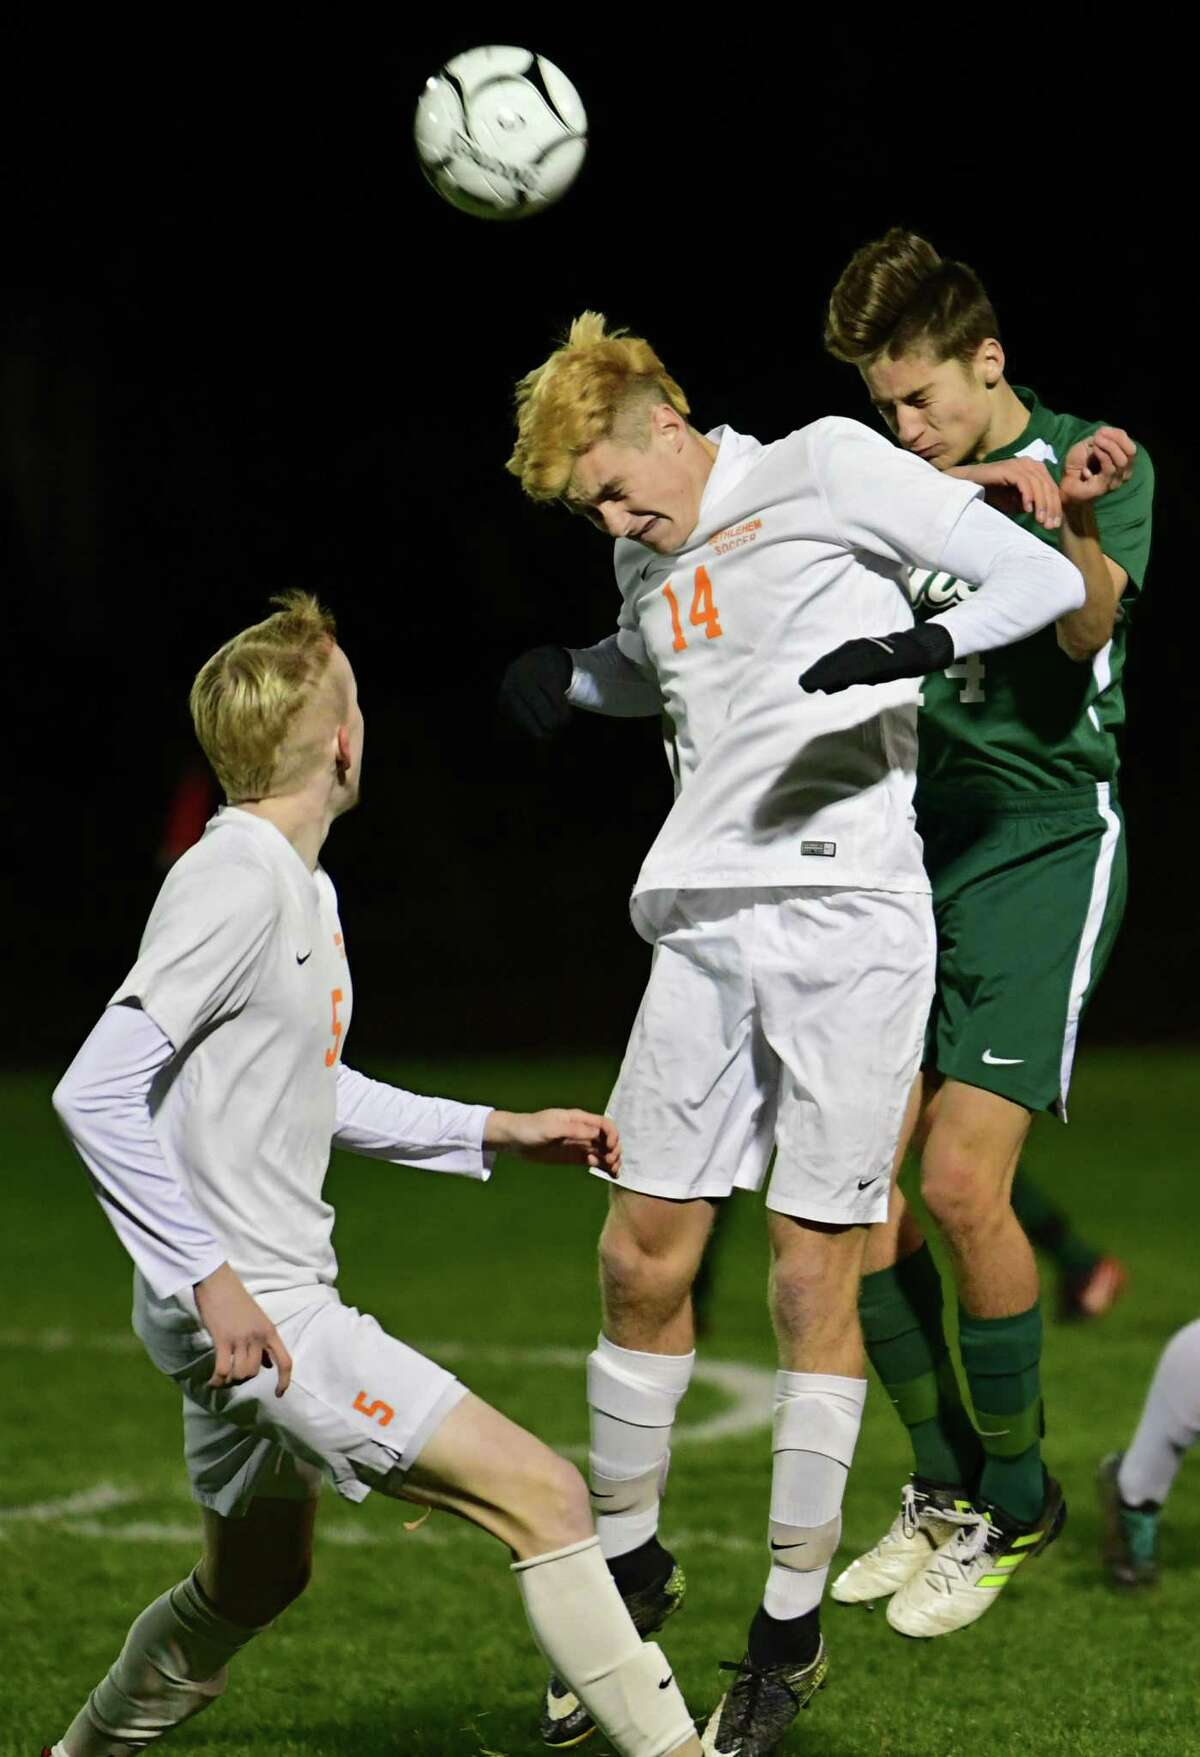 Bethlehem's Keith Winne, center, vies for the ball with Shenendehowa's Will Burdick in the Class AA boys' soccer final on Monday, Nov. 4, 2019 in Colonie, N.Y. (Lori Van Buren/Times Union)